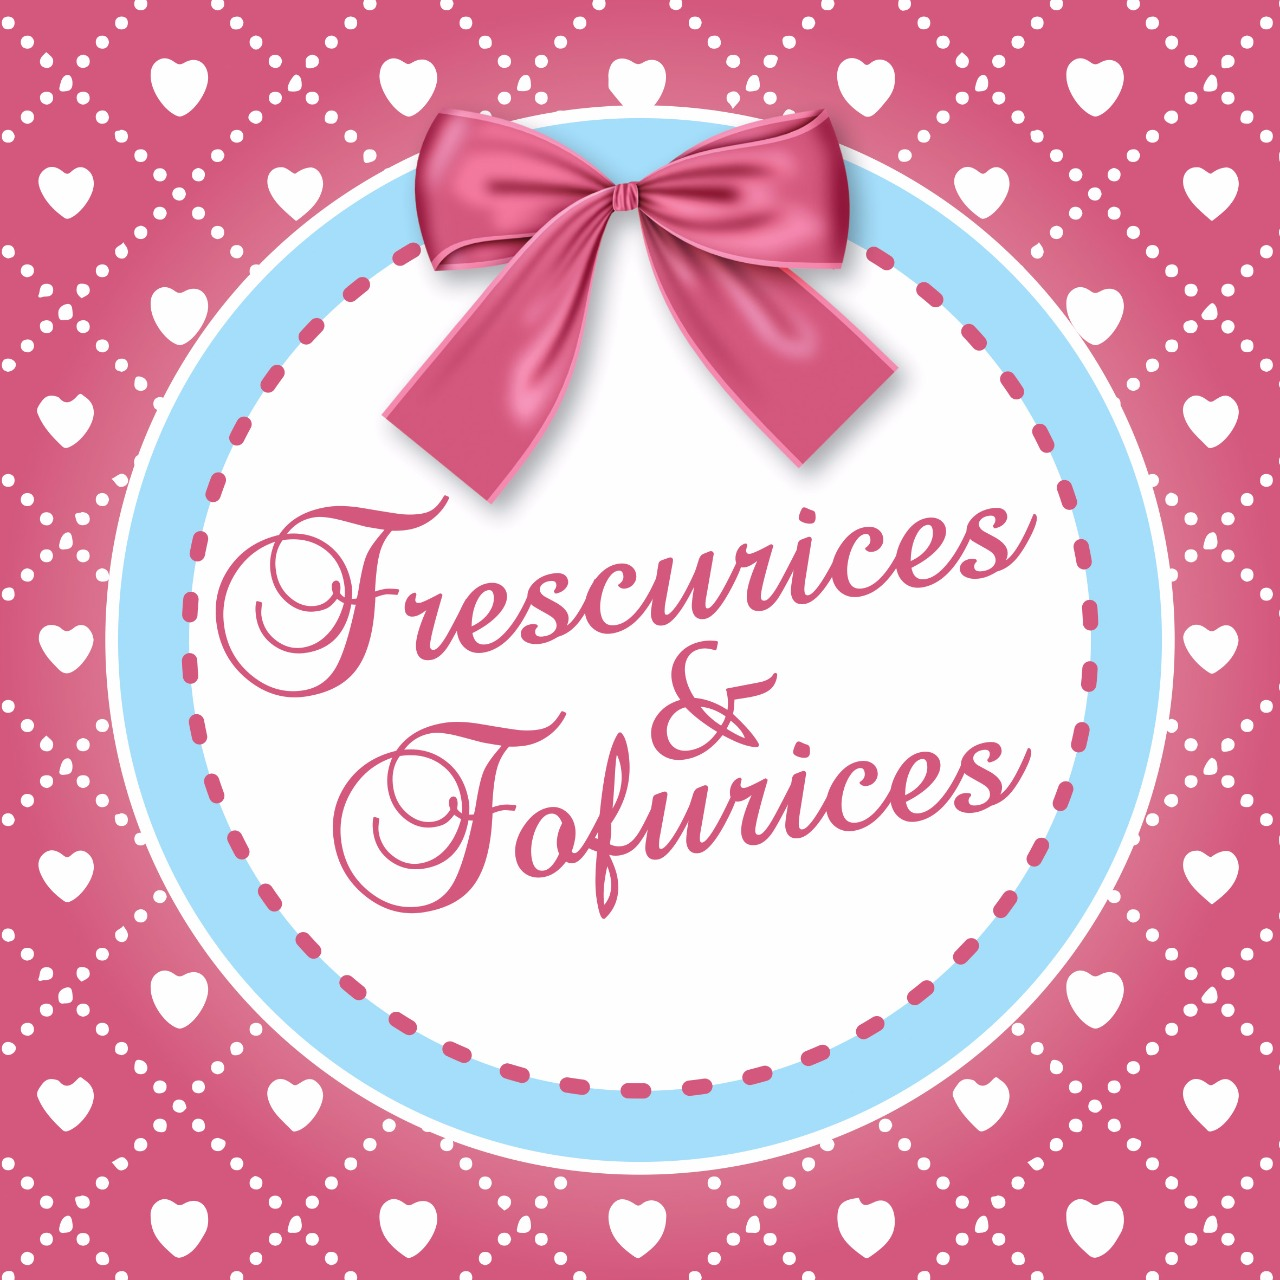 Blog Frescurices & Fofurices